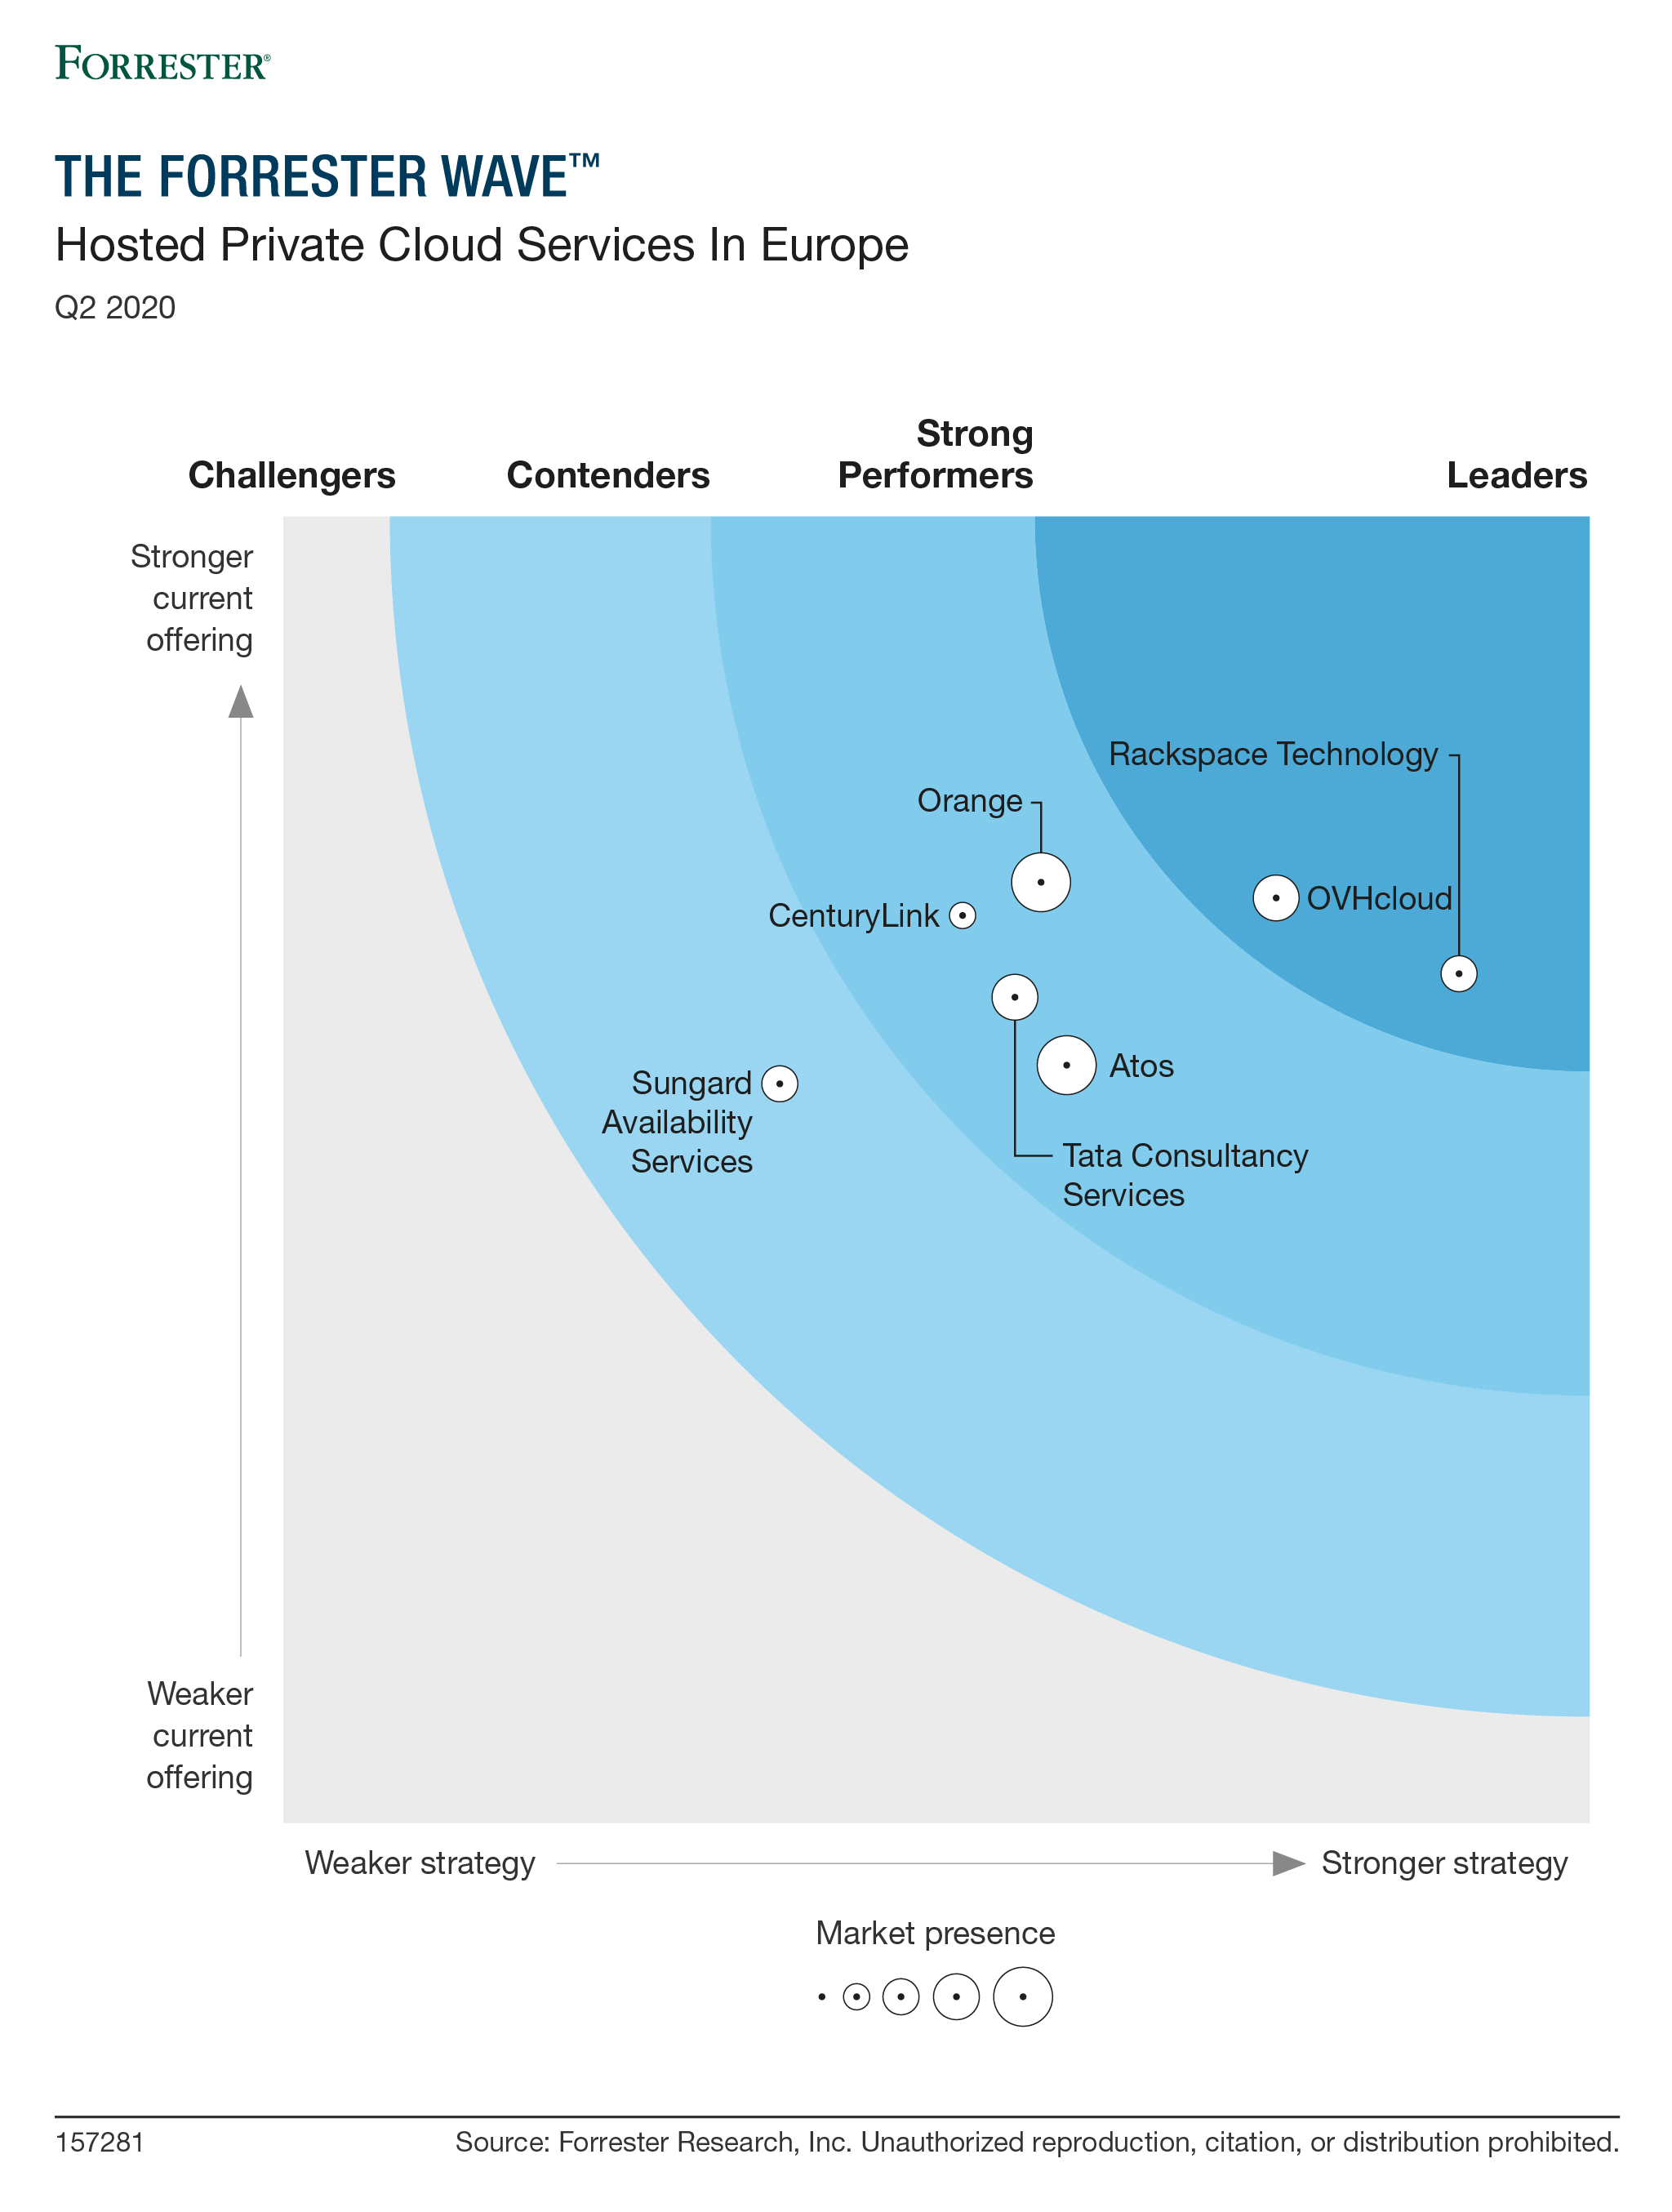 The Forrester Wave™: Hosted Private Cloud Services in Europe, Q2 2020